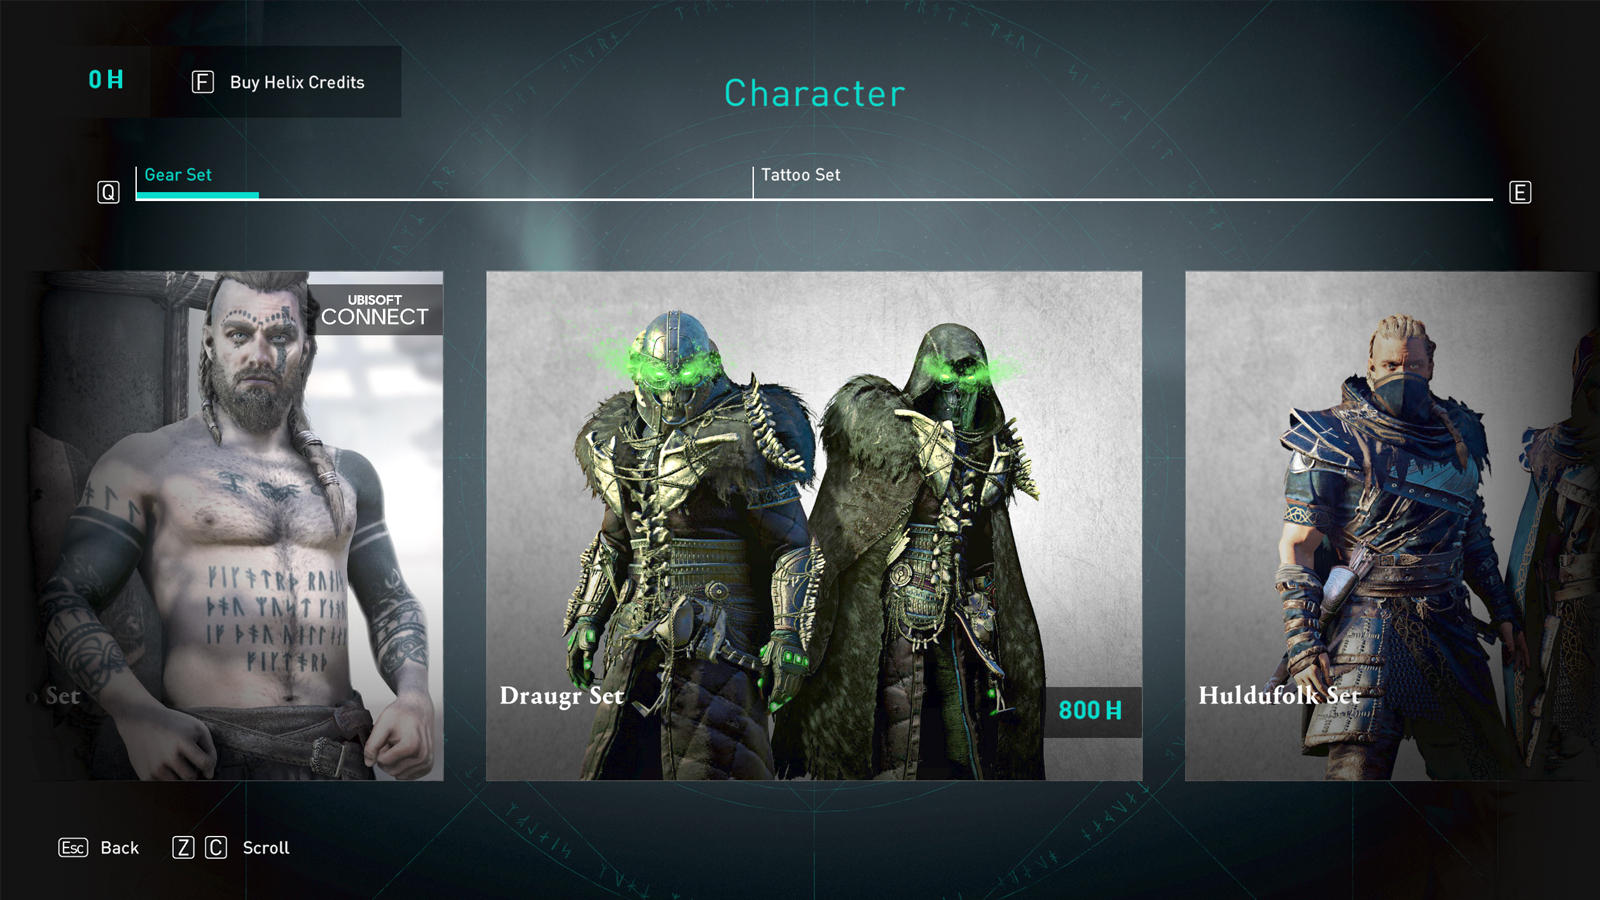 The Draugr set in the Valhalla store